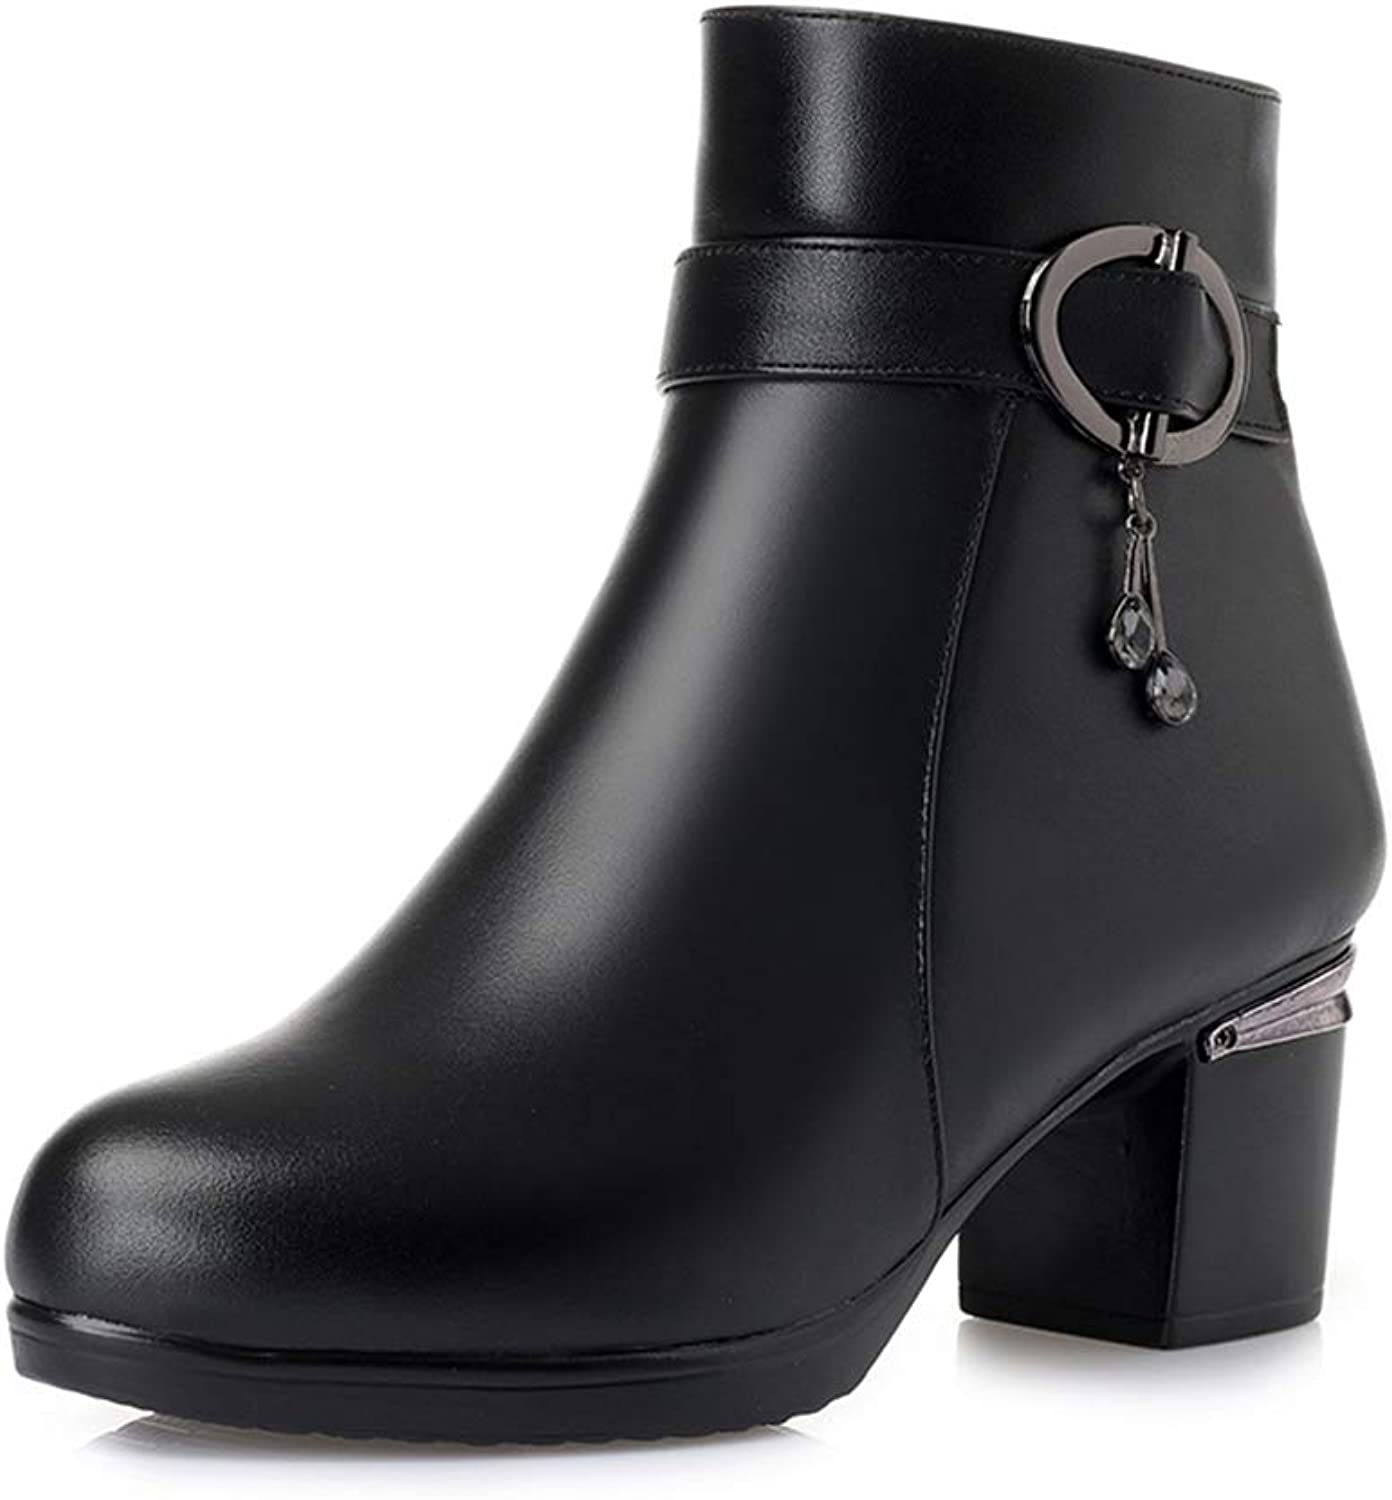 JOYBI Women Winter Fashion Round Toe Ankle Boot Zip Faux Leather Slip On Thick Mid Heel Waterproof Boots